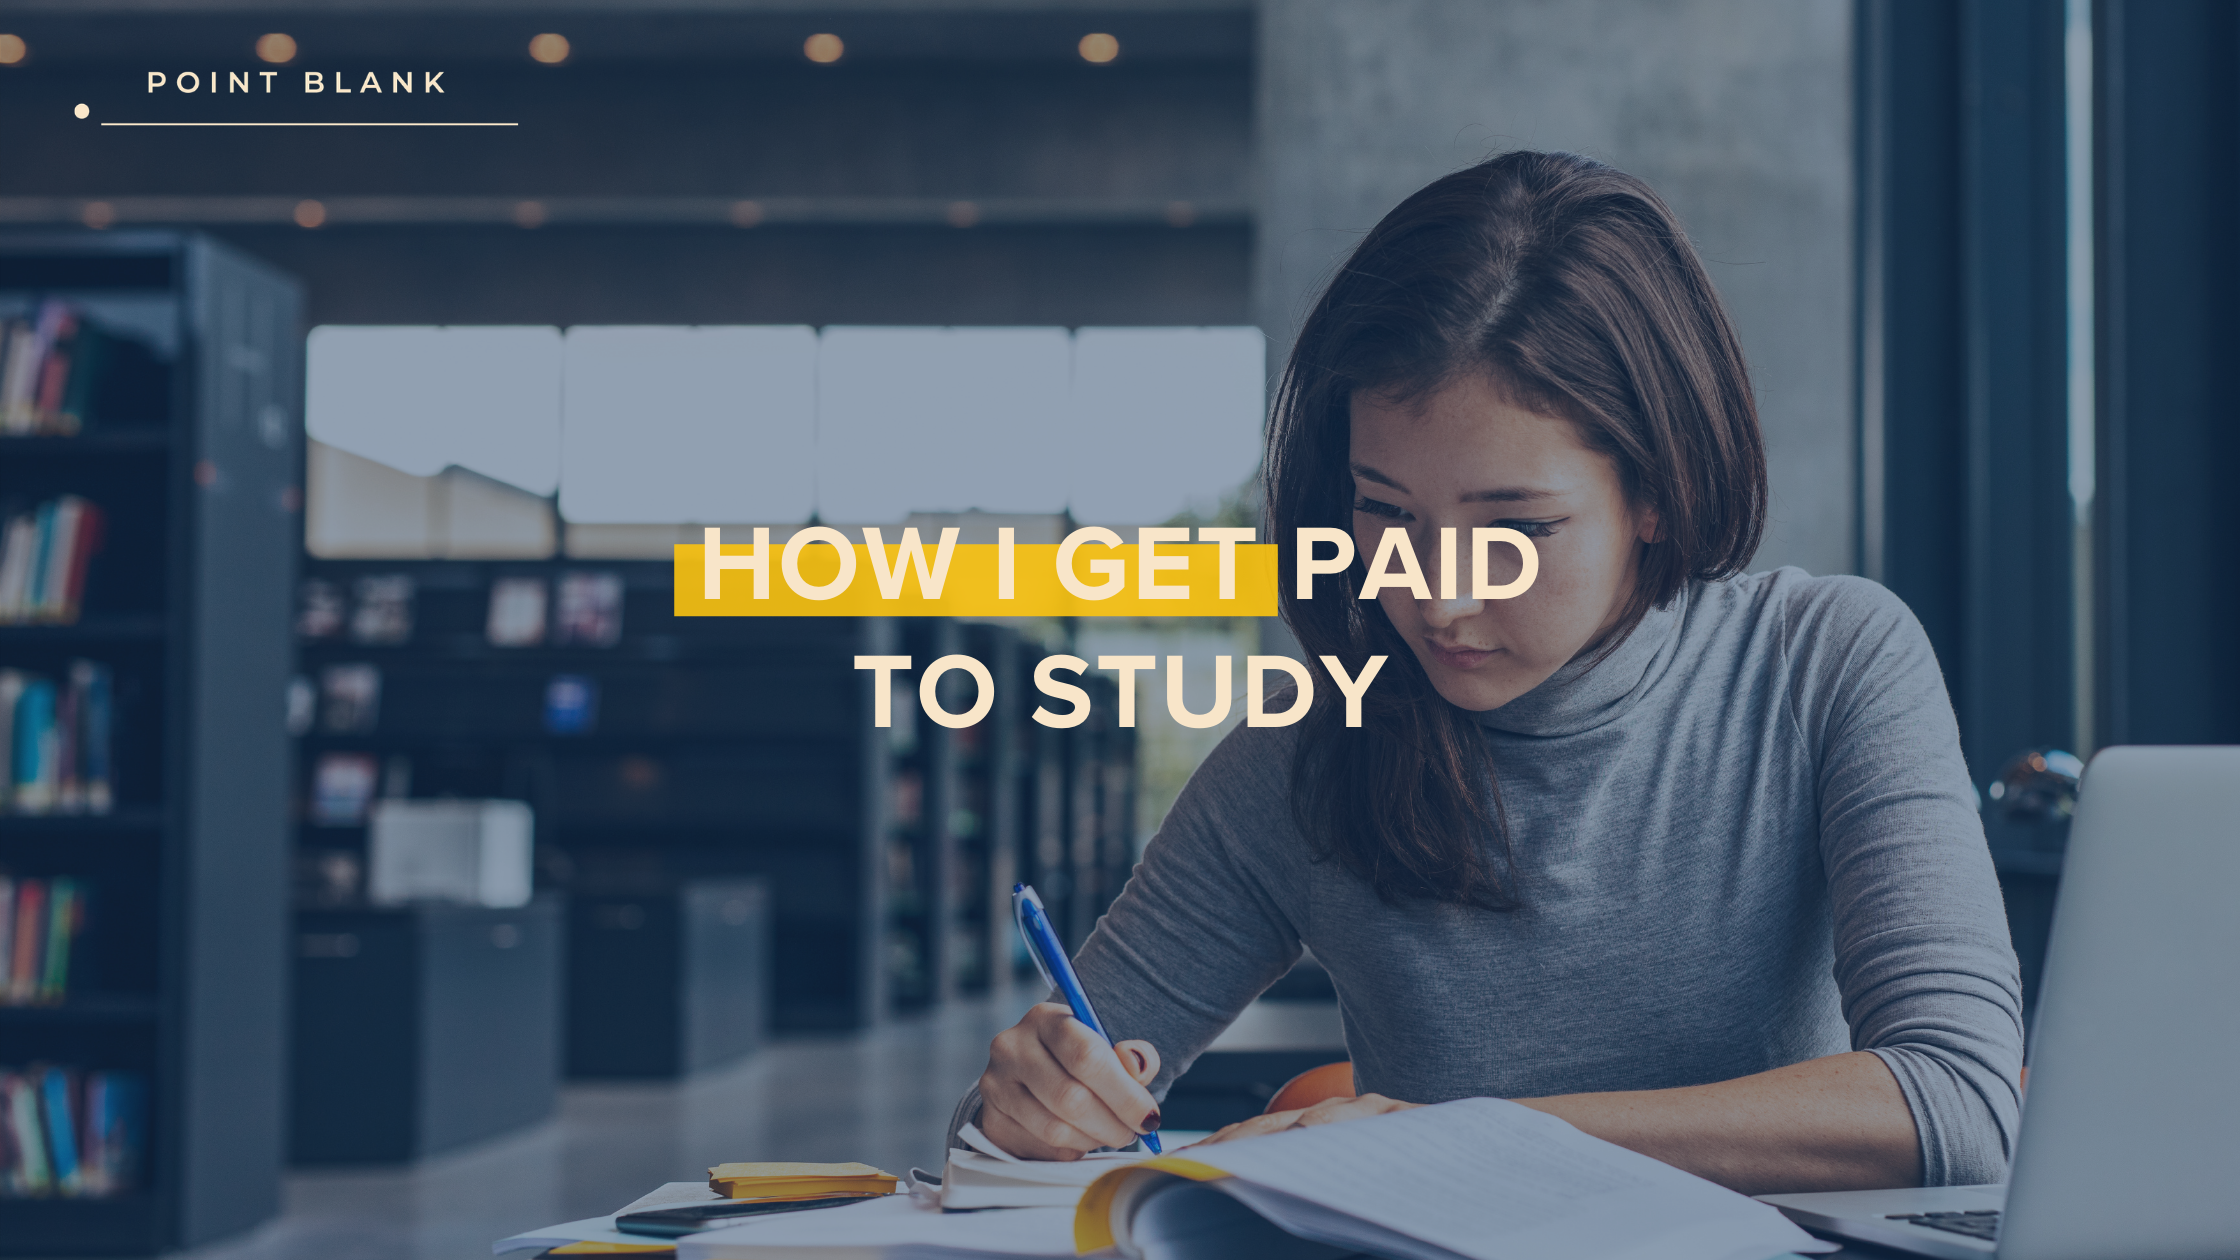 How I Get Paid To Study-Point Blank Blog